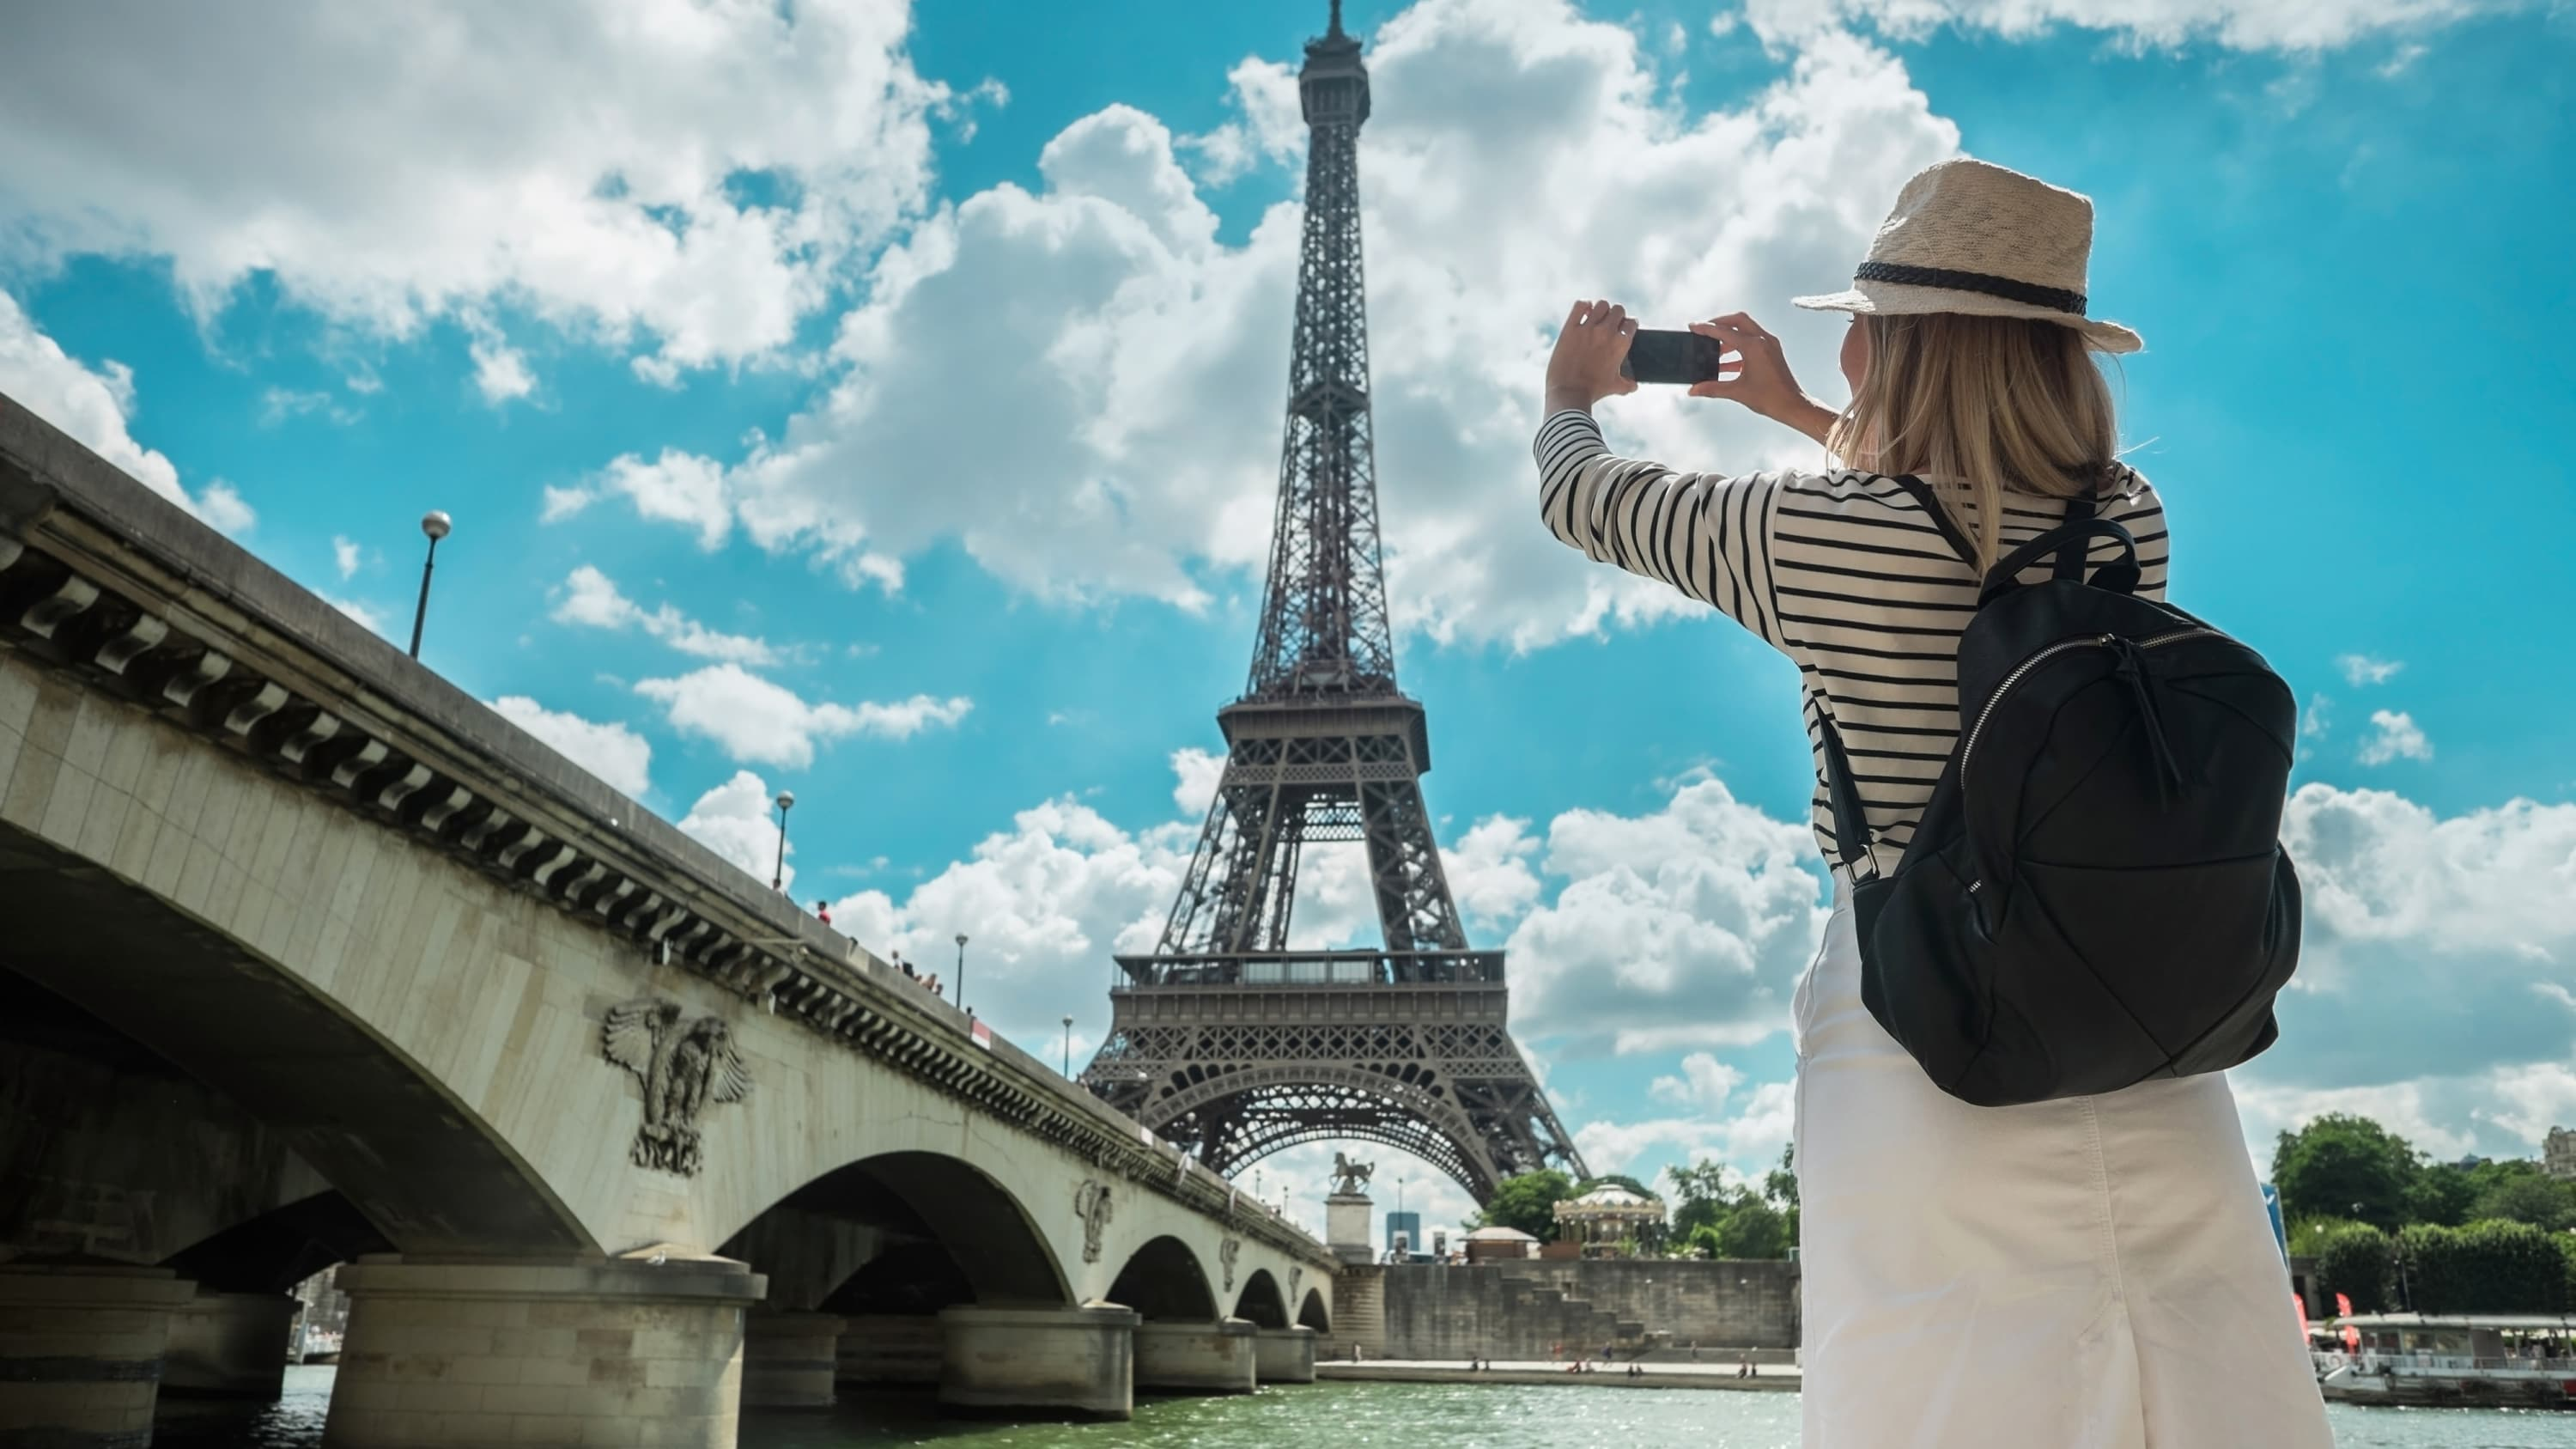 A woman tourist in Paris taking pictures of The Eiffel Tower.